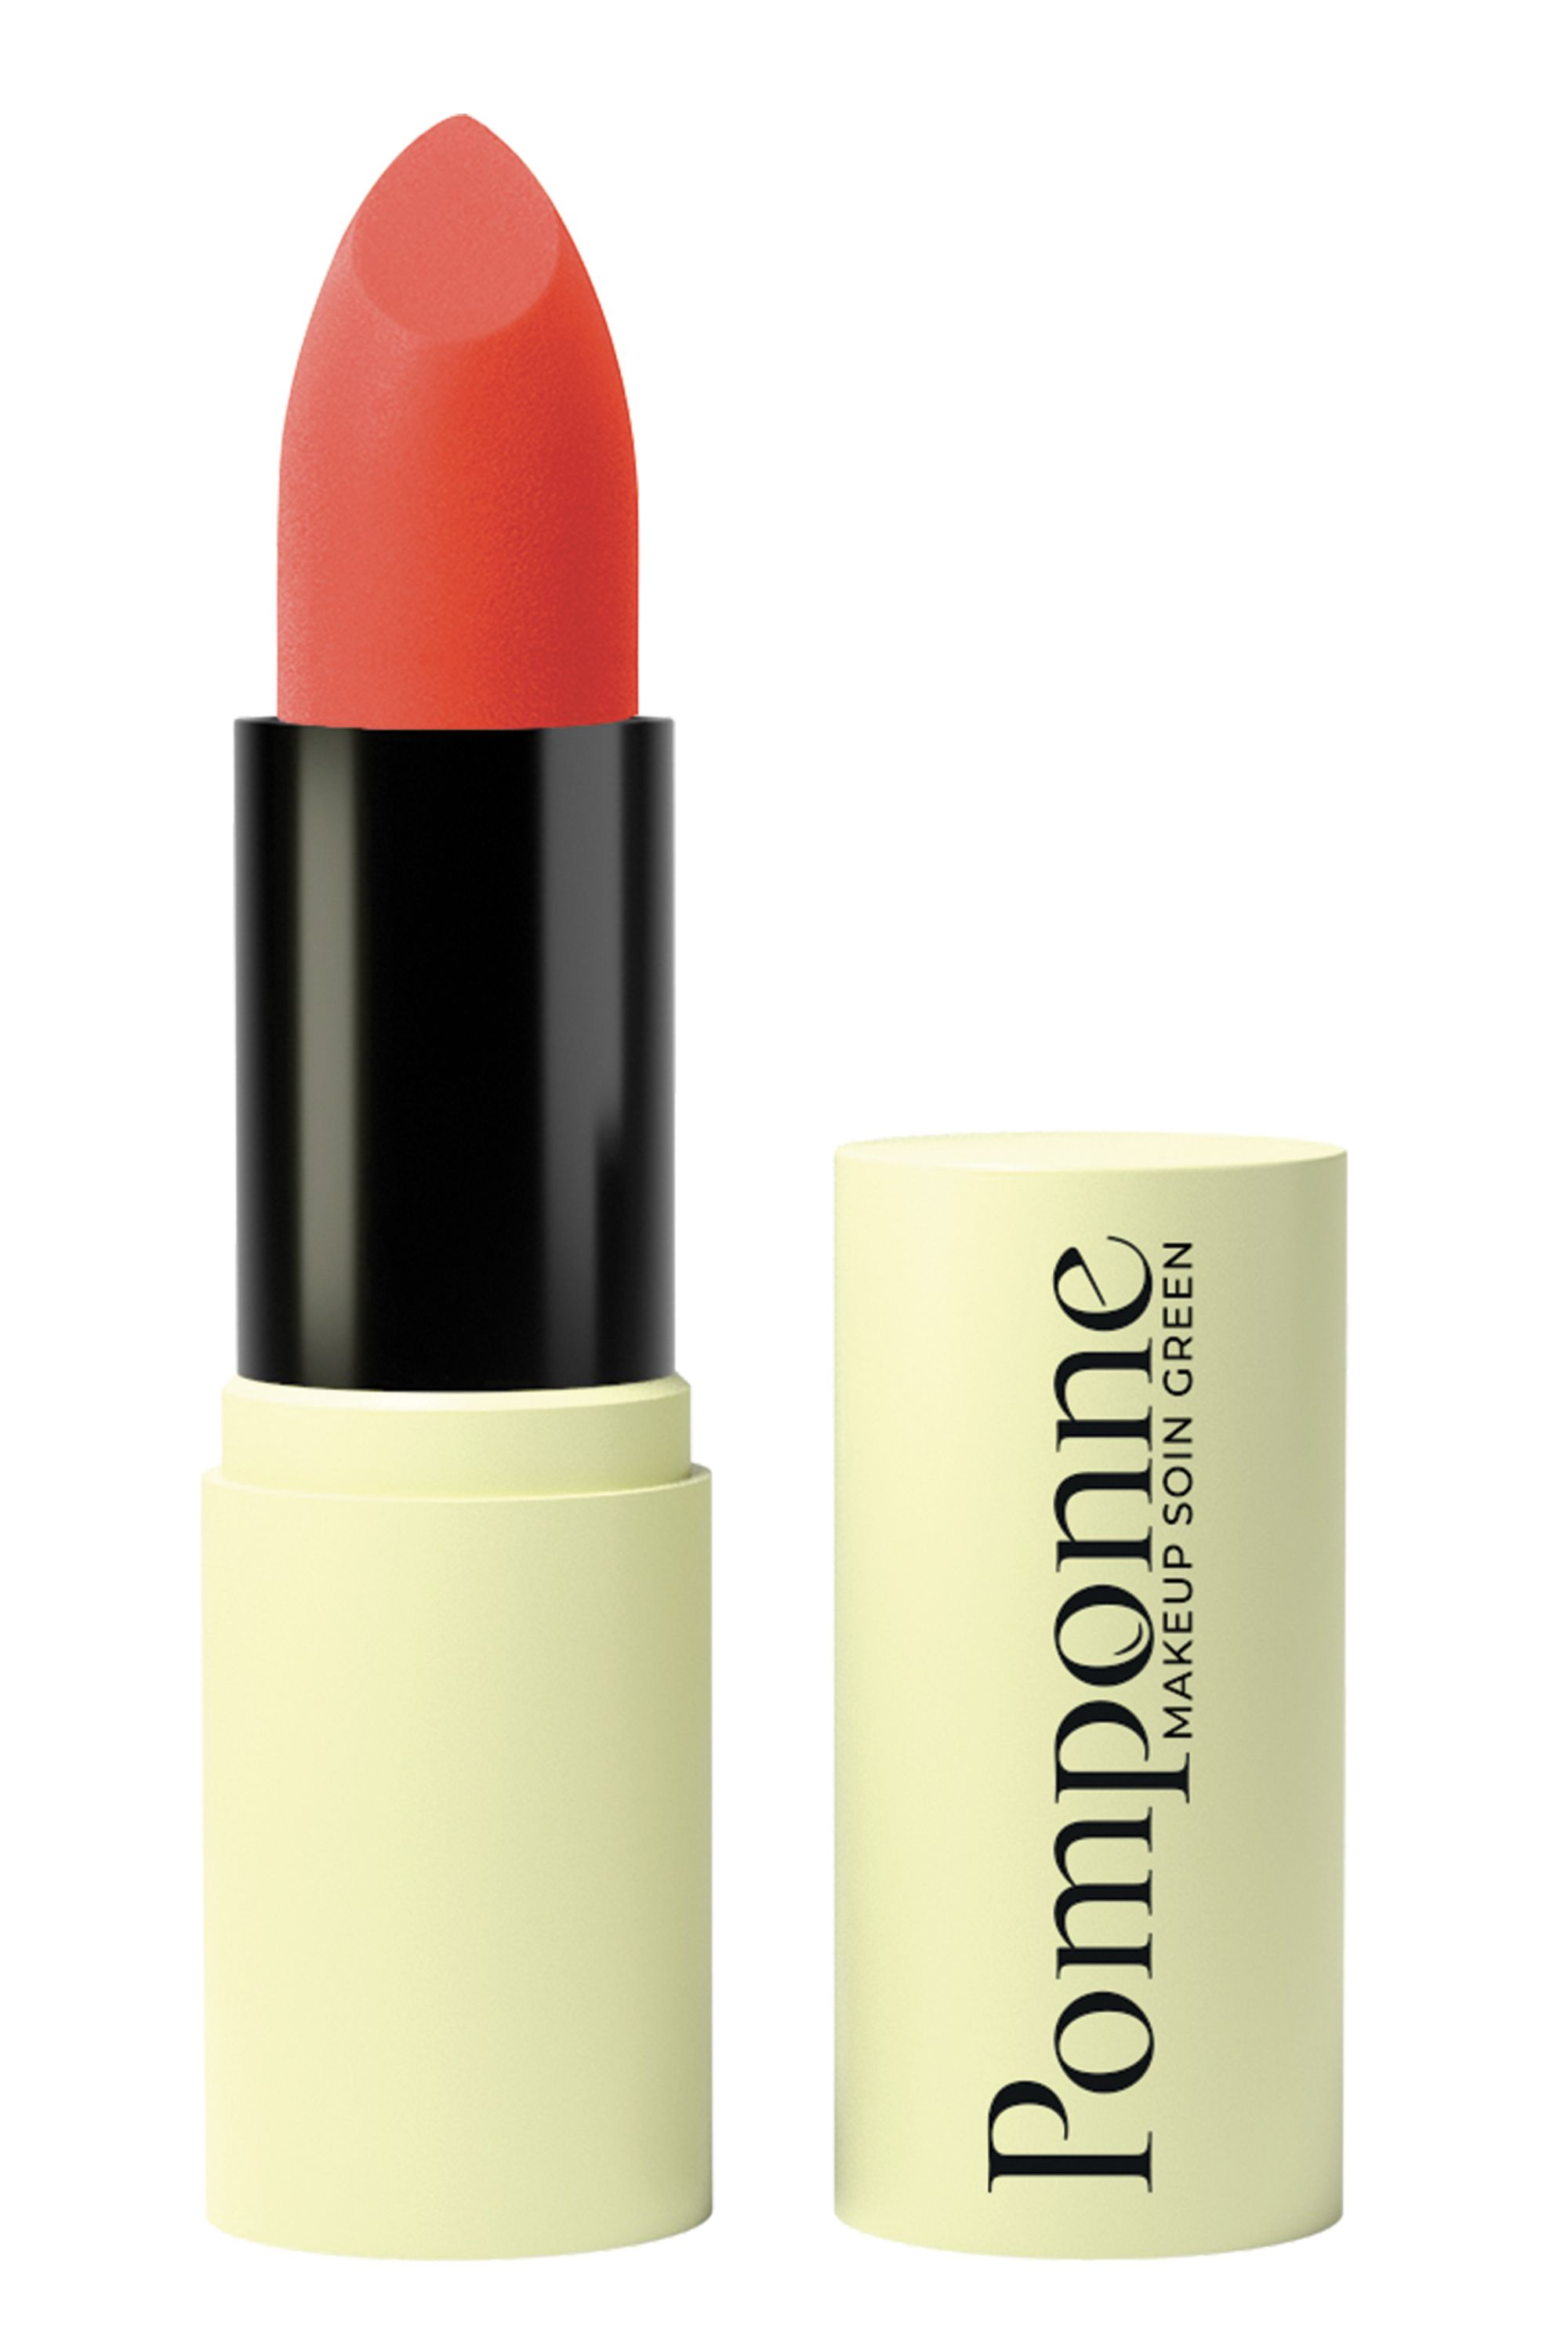 Blissim : Pomponne - Rouge à lèvres hydratant, naturel et vegan - 03 – Orange Sixties